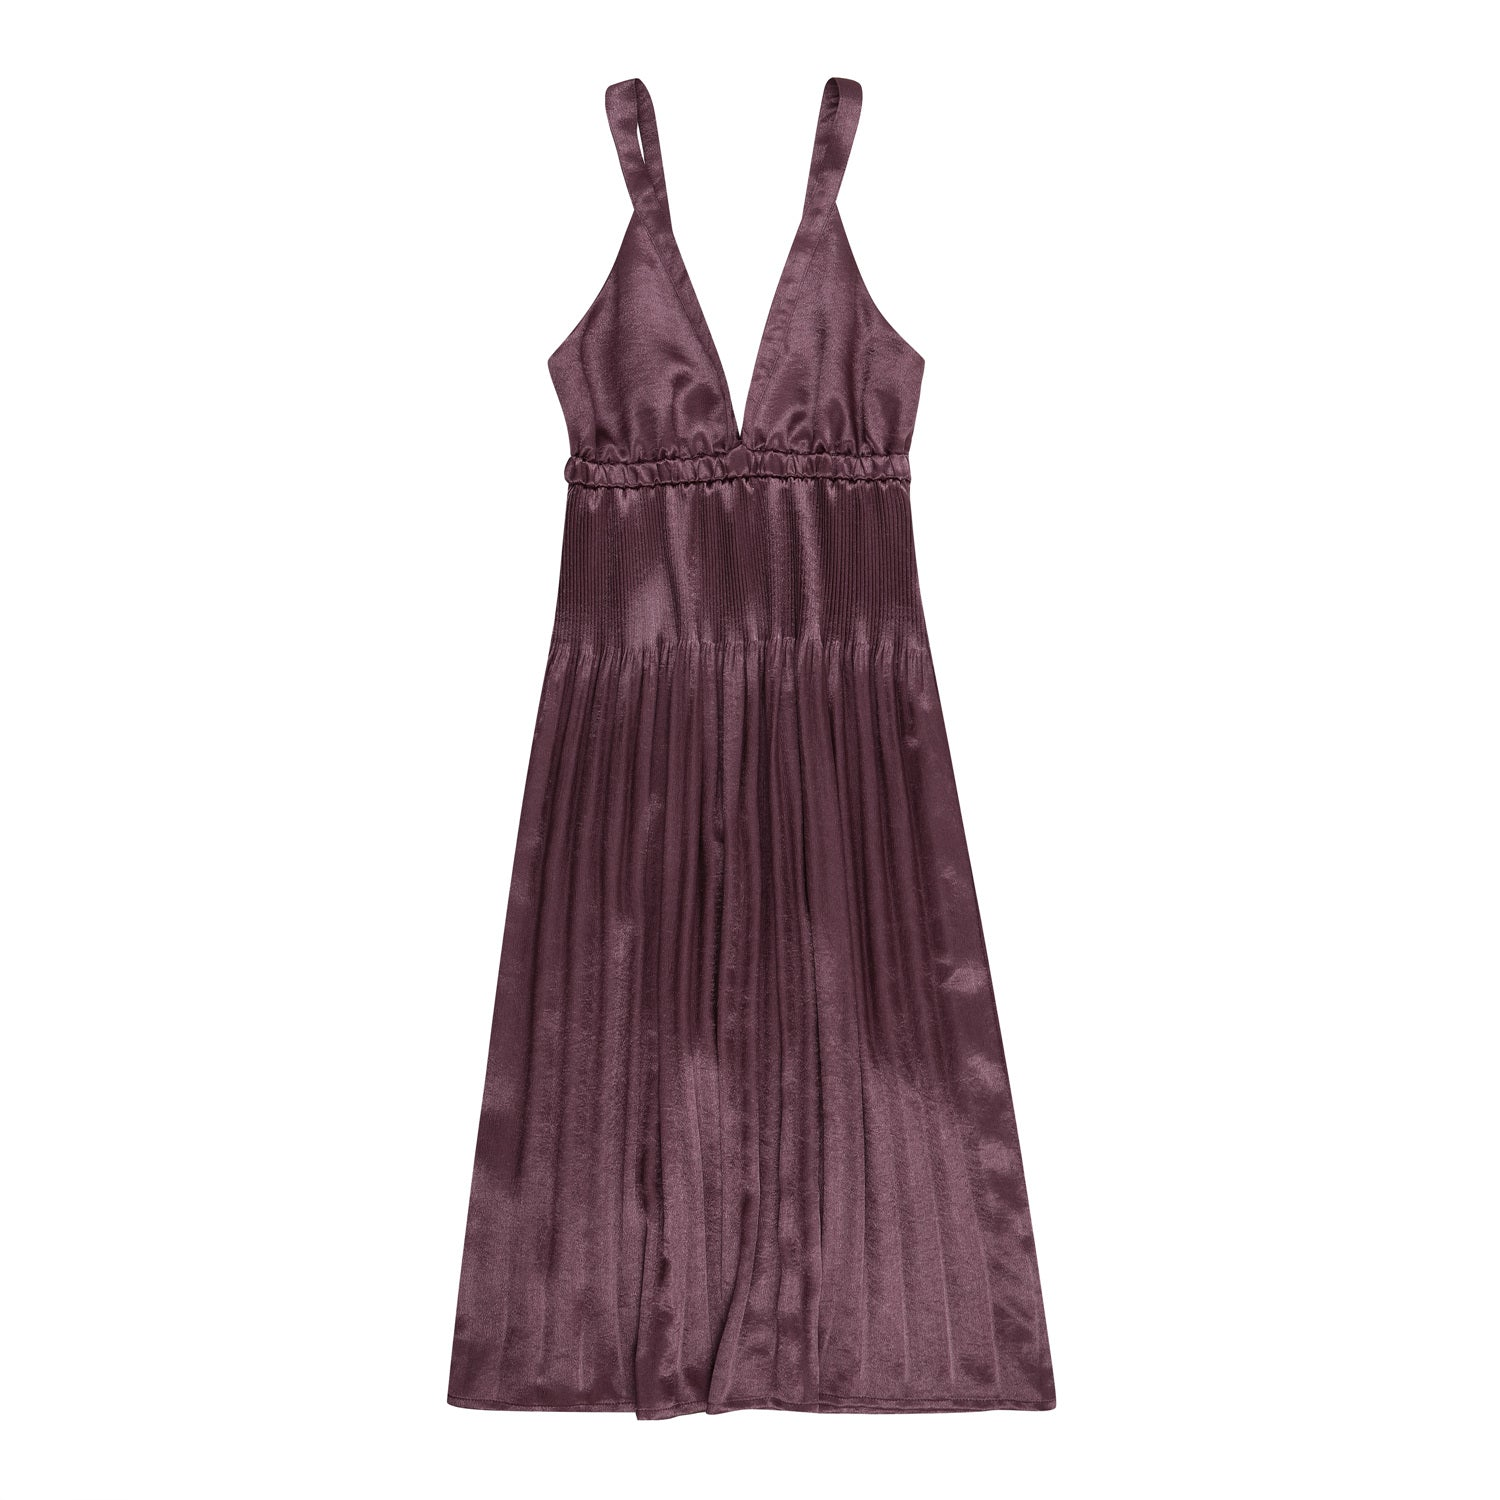 Fortuna shining dress - Burgundy